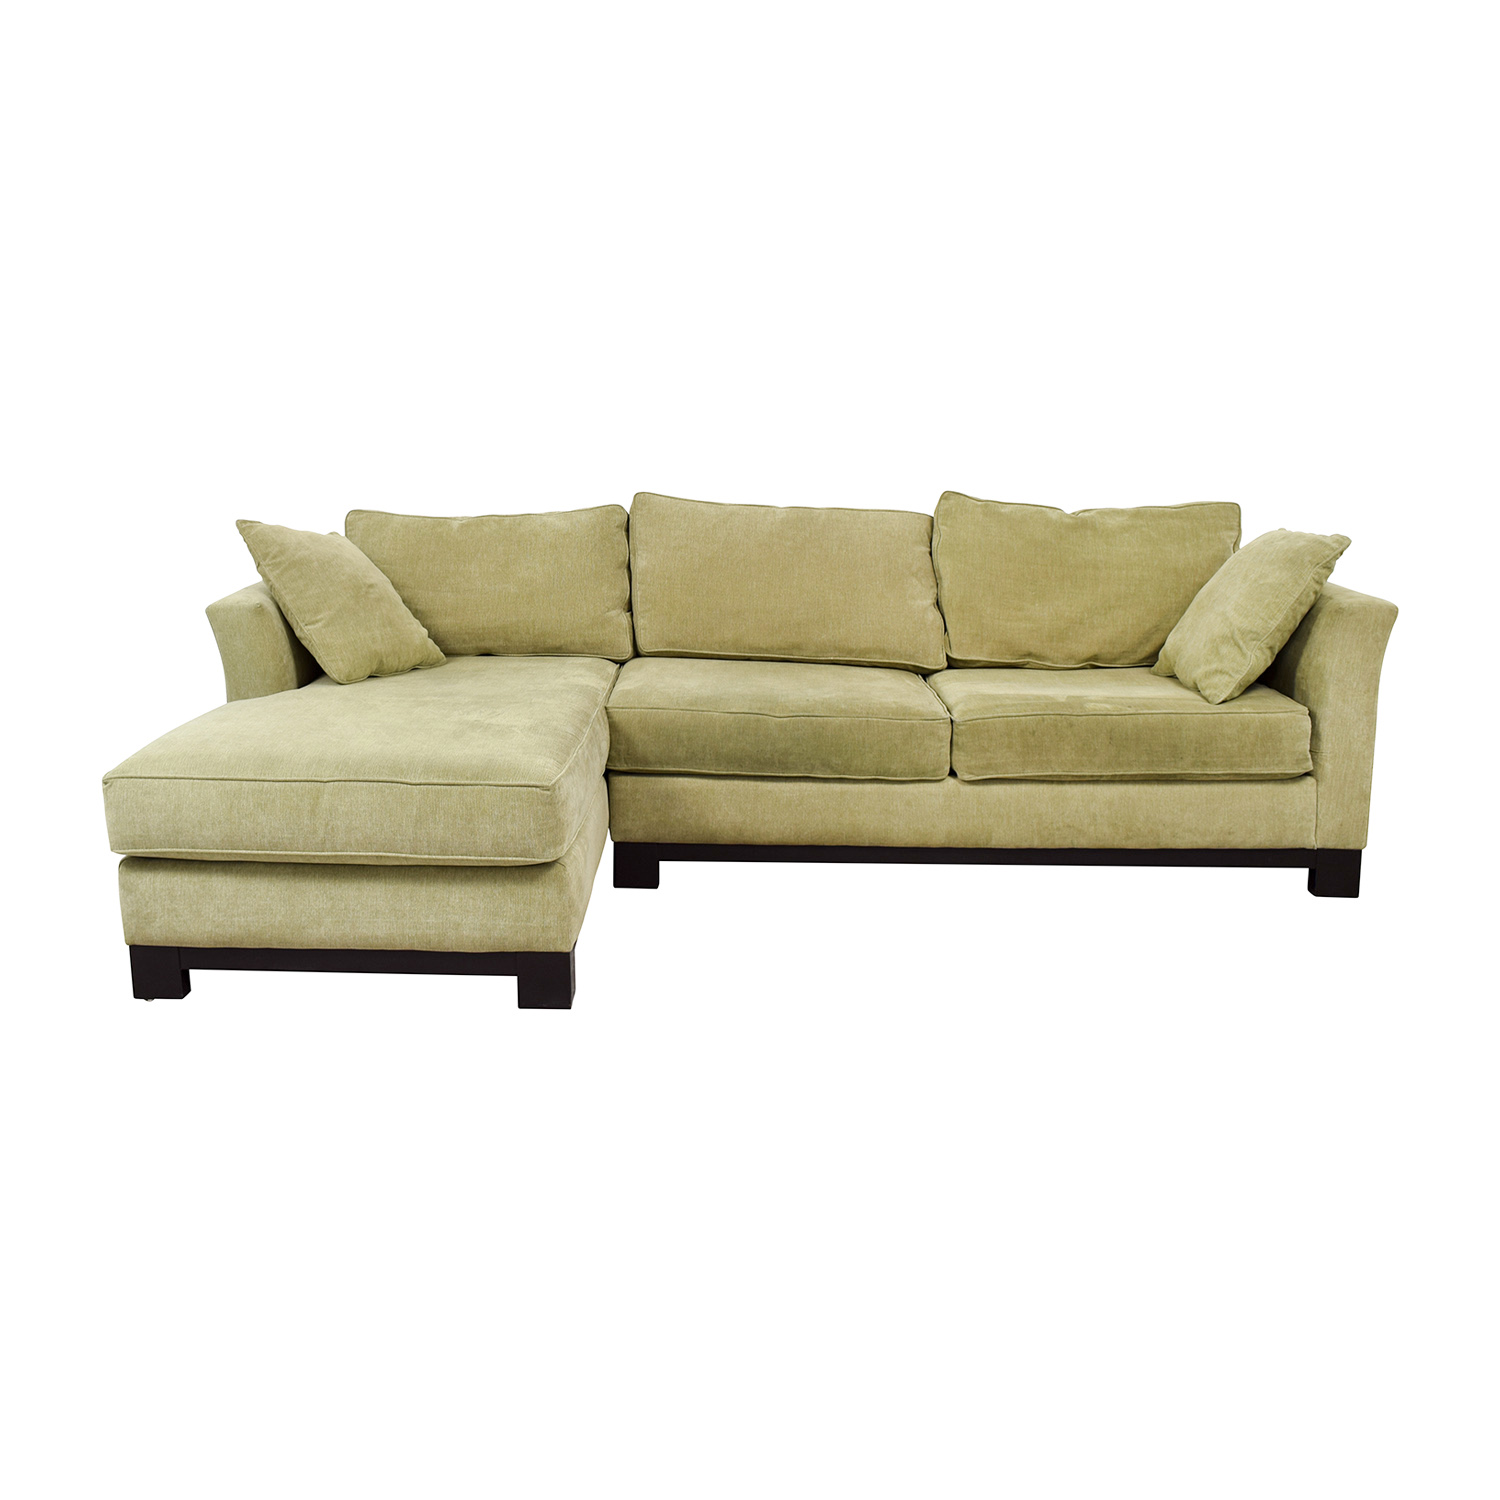 Macy's Macy's Light Green Chaise Sectional for sale